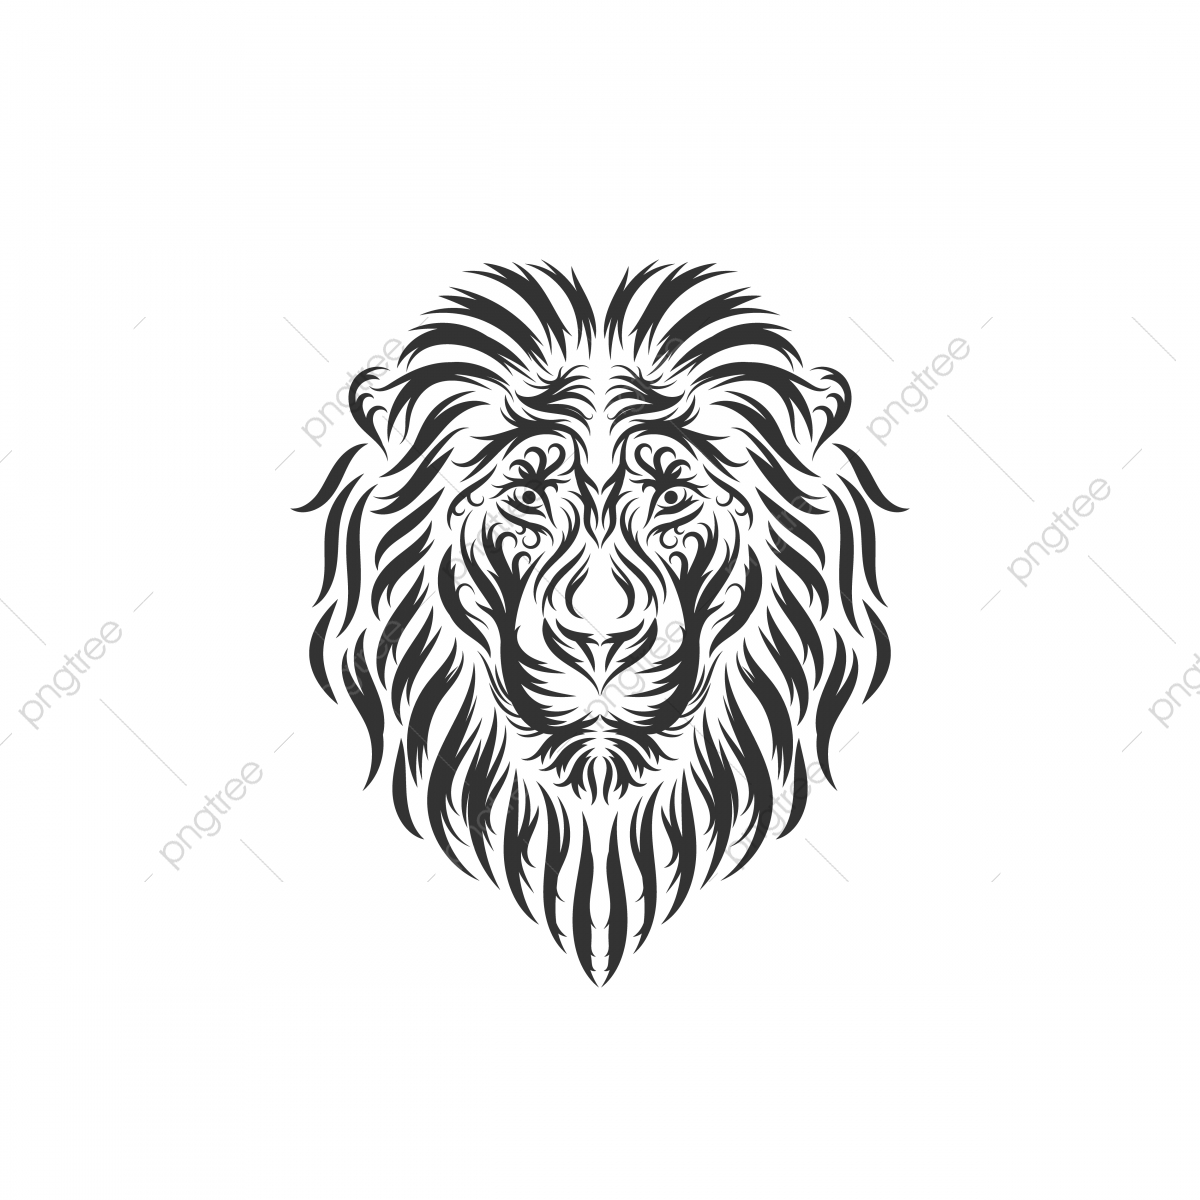 Lion Head Png Images Vector And Psd Files Free Download On Pngtree Discover and download free lion head png images on pngitem. https pngtree com freepng hand drawn lion head inspirations 4157981 html